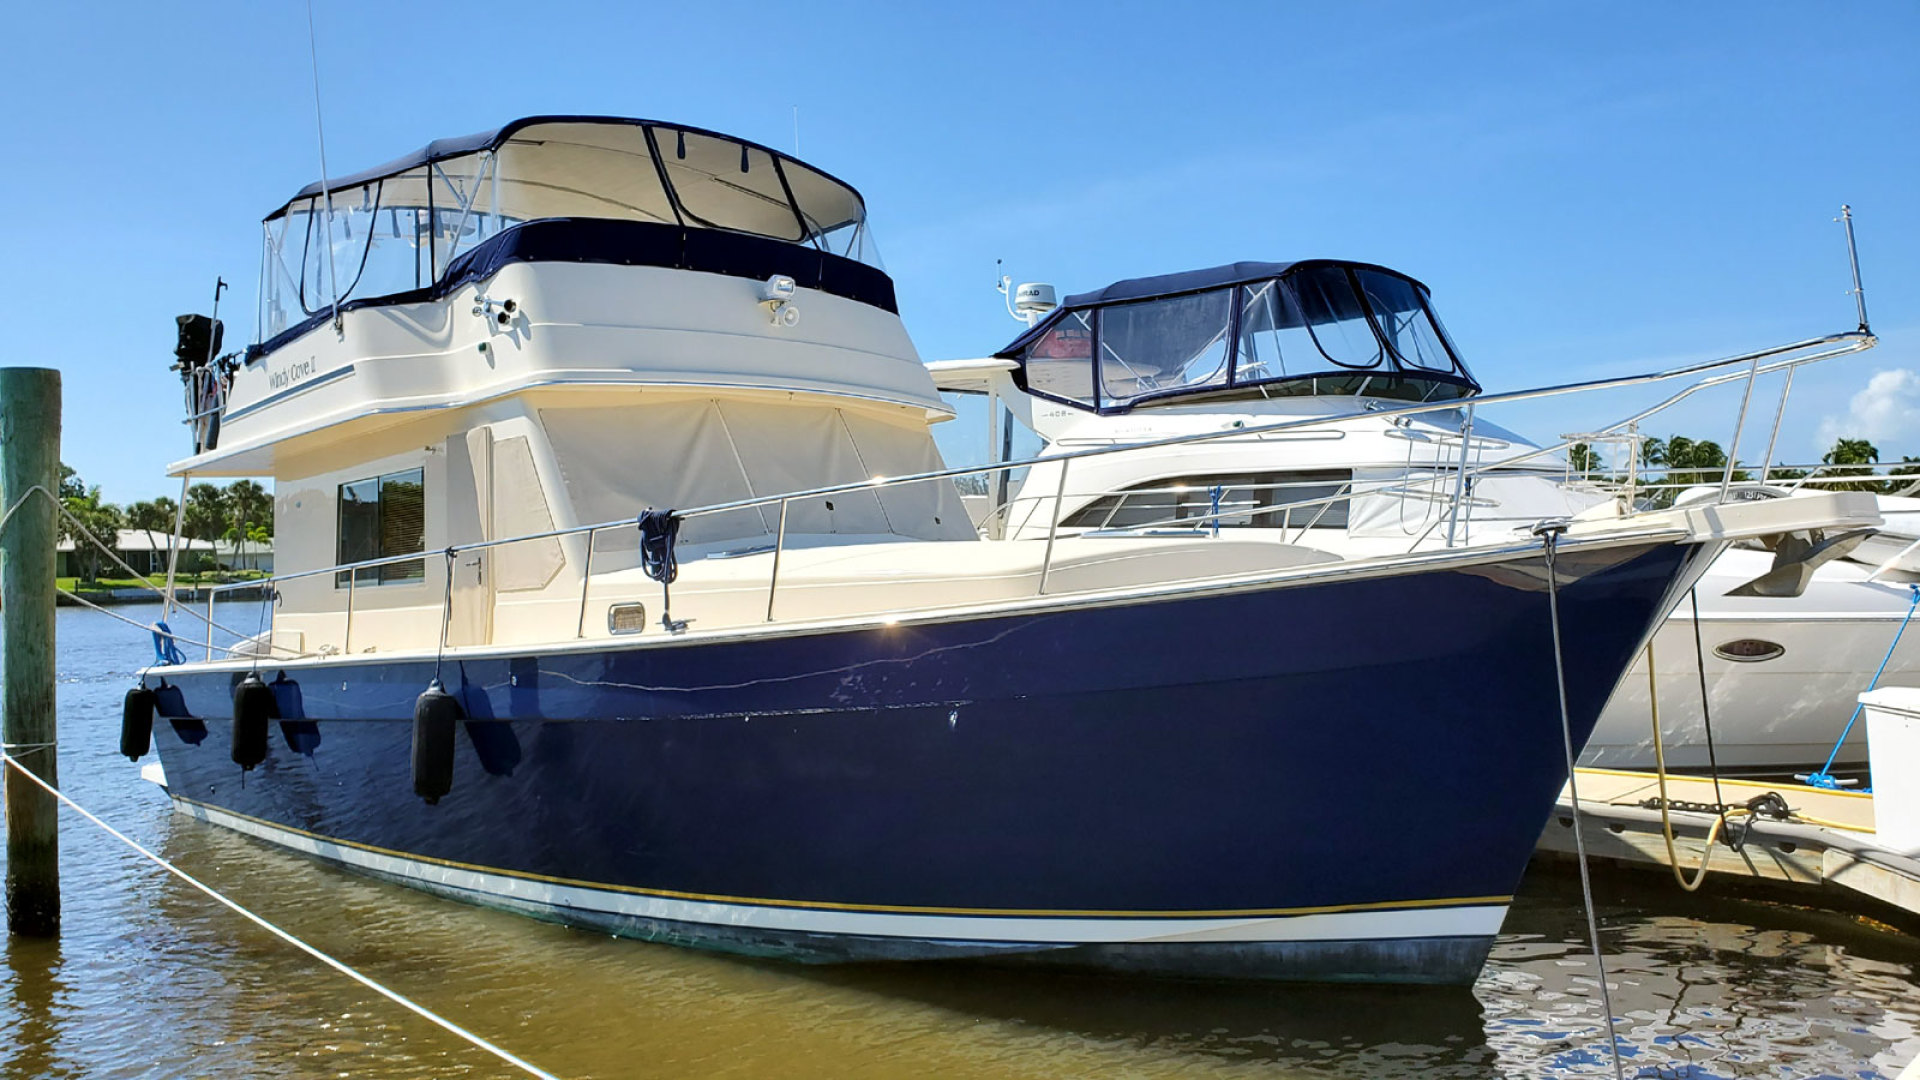 43' Mainship 2006 430 Sedan Windy Cove II